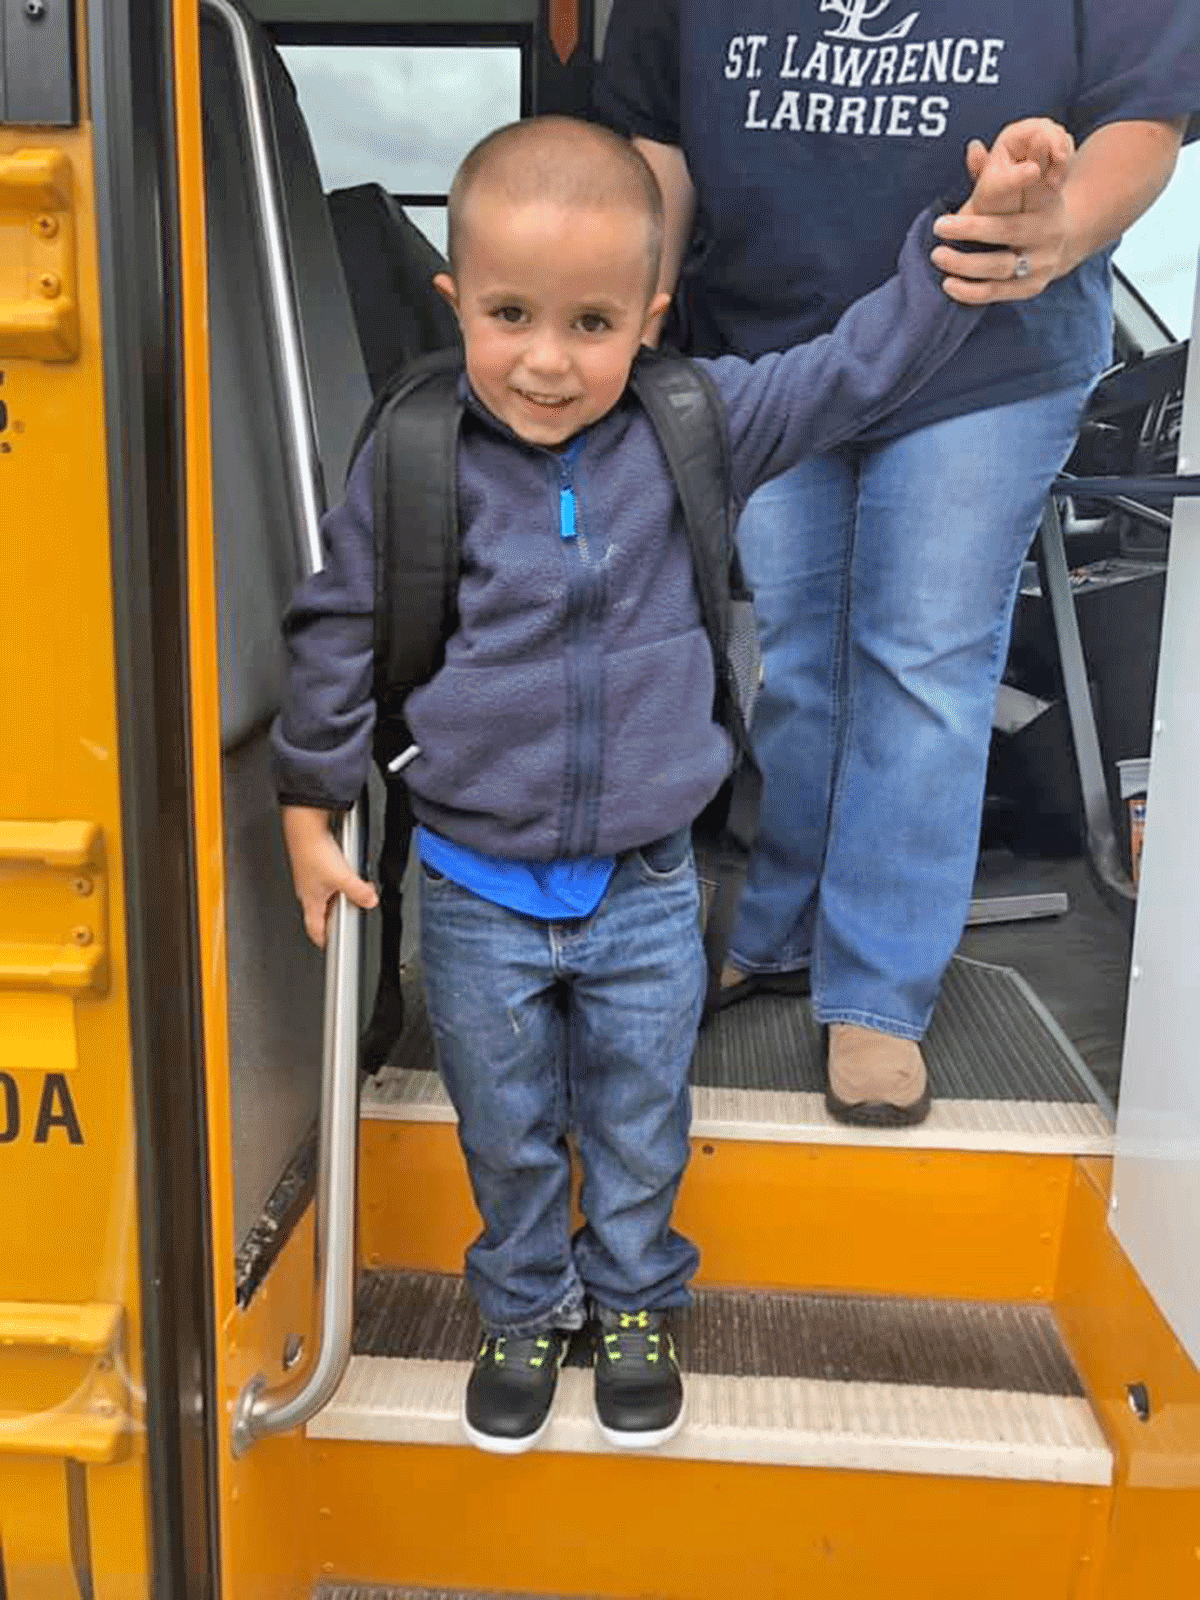 Marcus Richards, 4, boards the bus for his first day of pre-kindergarten at St. Lawrence Central. Photo submitted by Michelle Lucas.